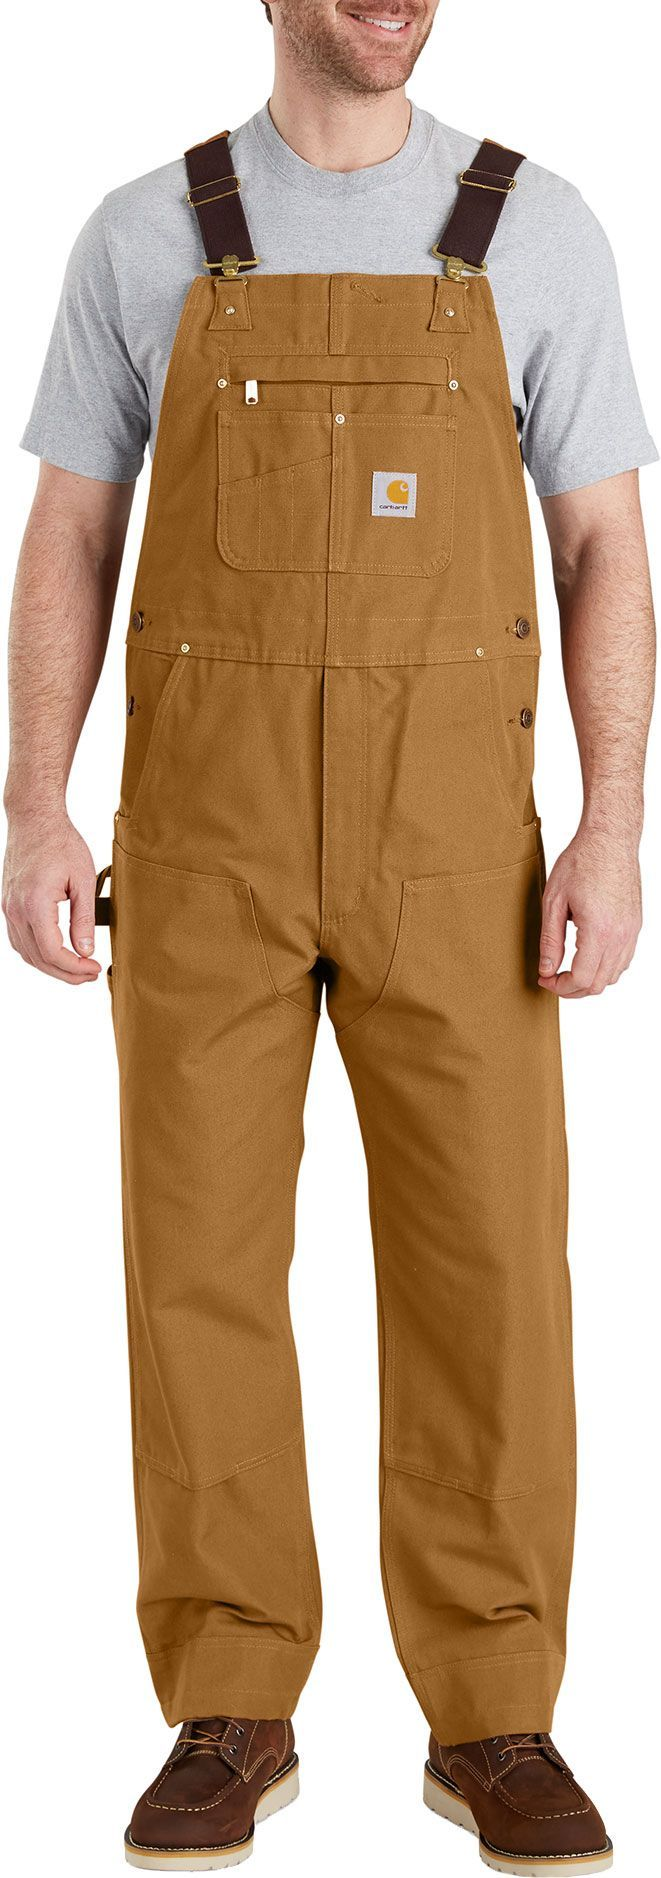 carhartt men s duck bib lined overalls brown in 2019 on insulated overalls for men id=31399